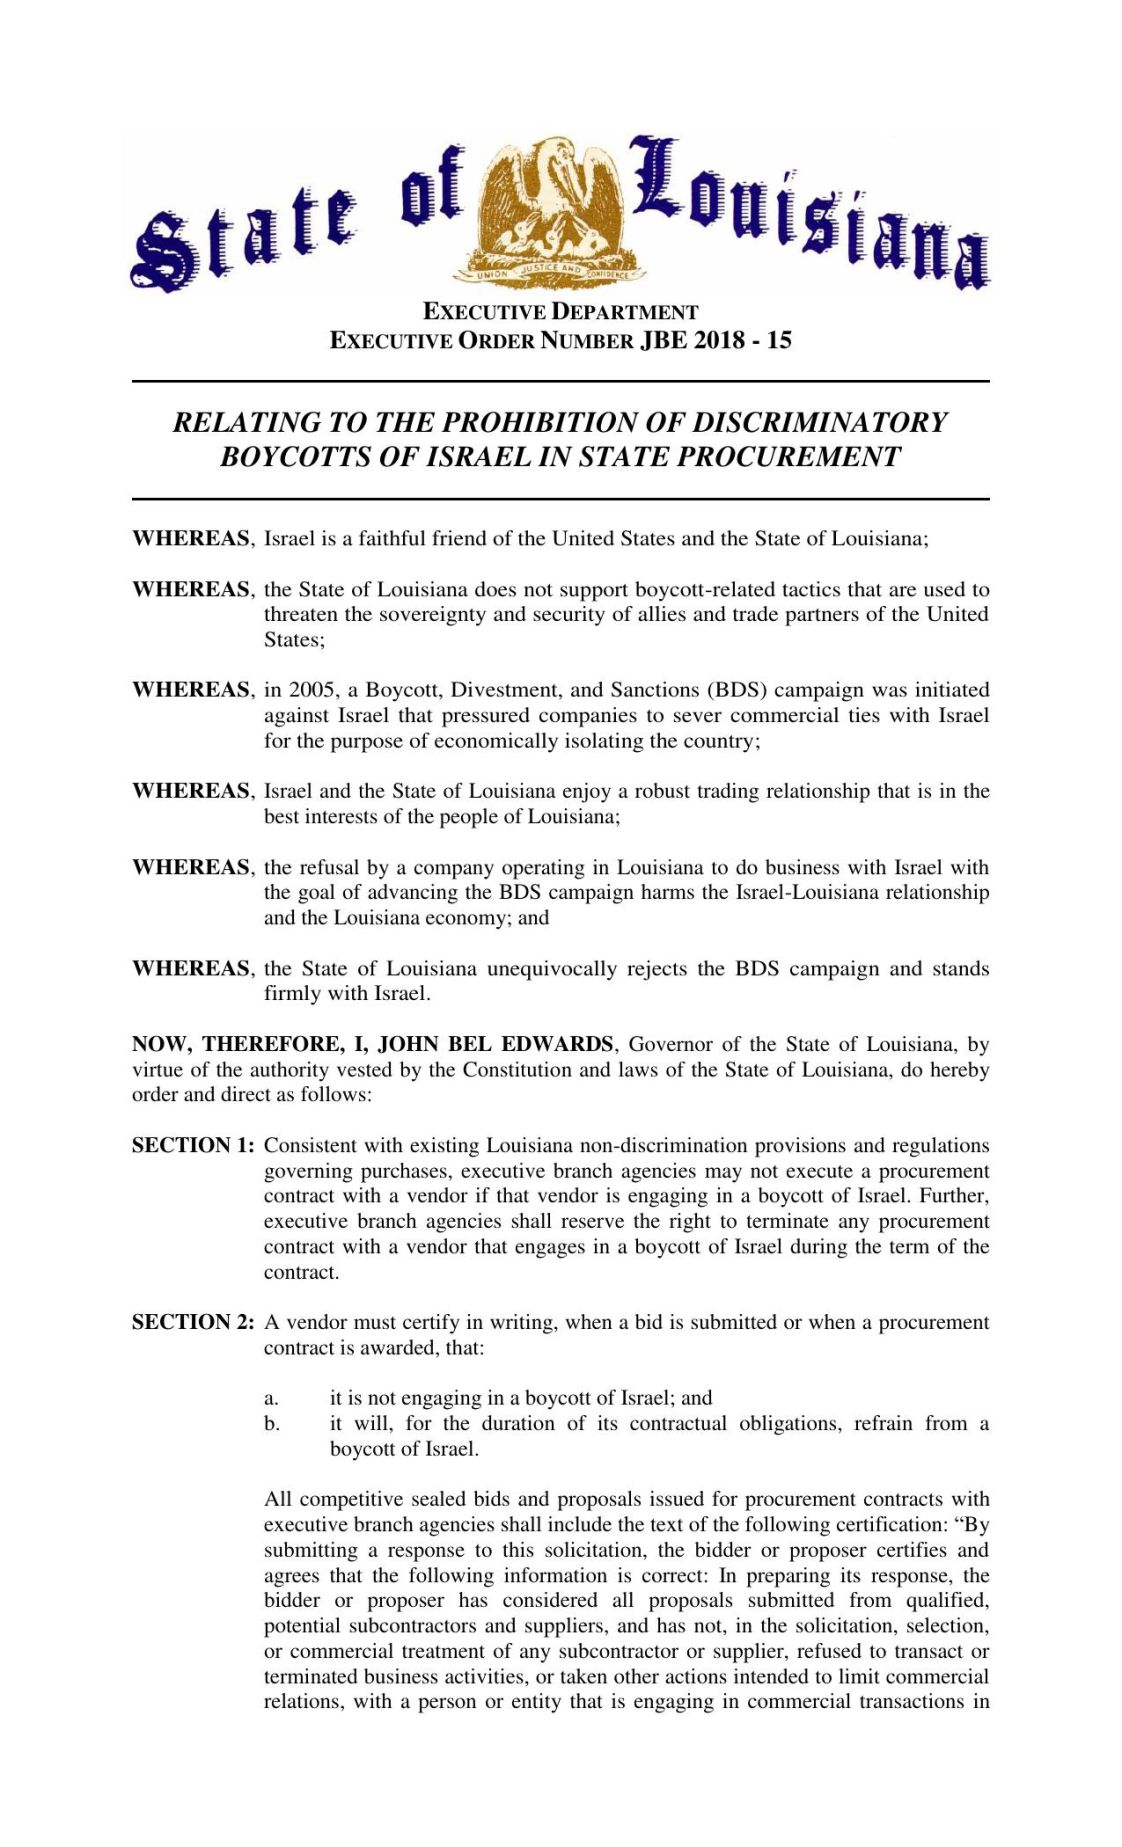 Pdf Gov John Bel Edwards Executive Order On State Contractors And